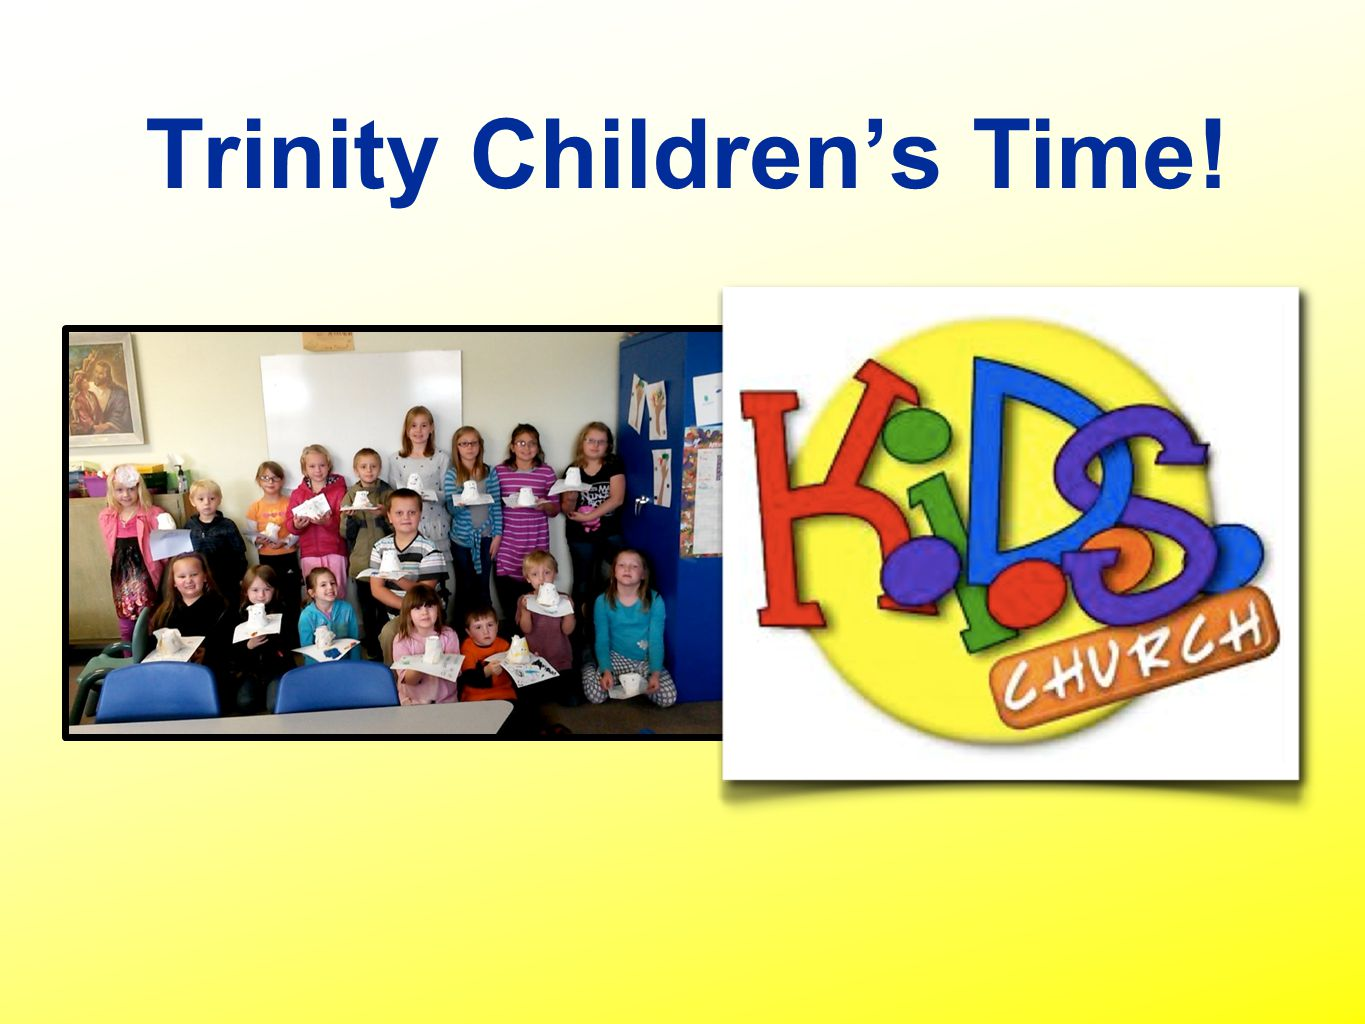 Trinity Children's Time!